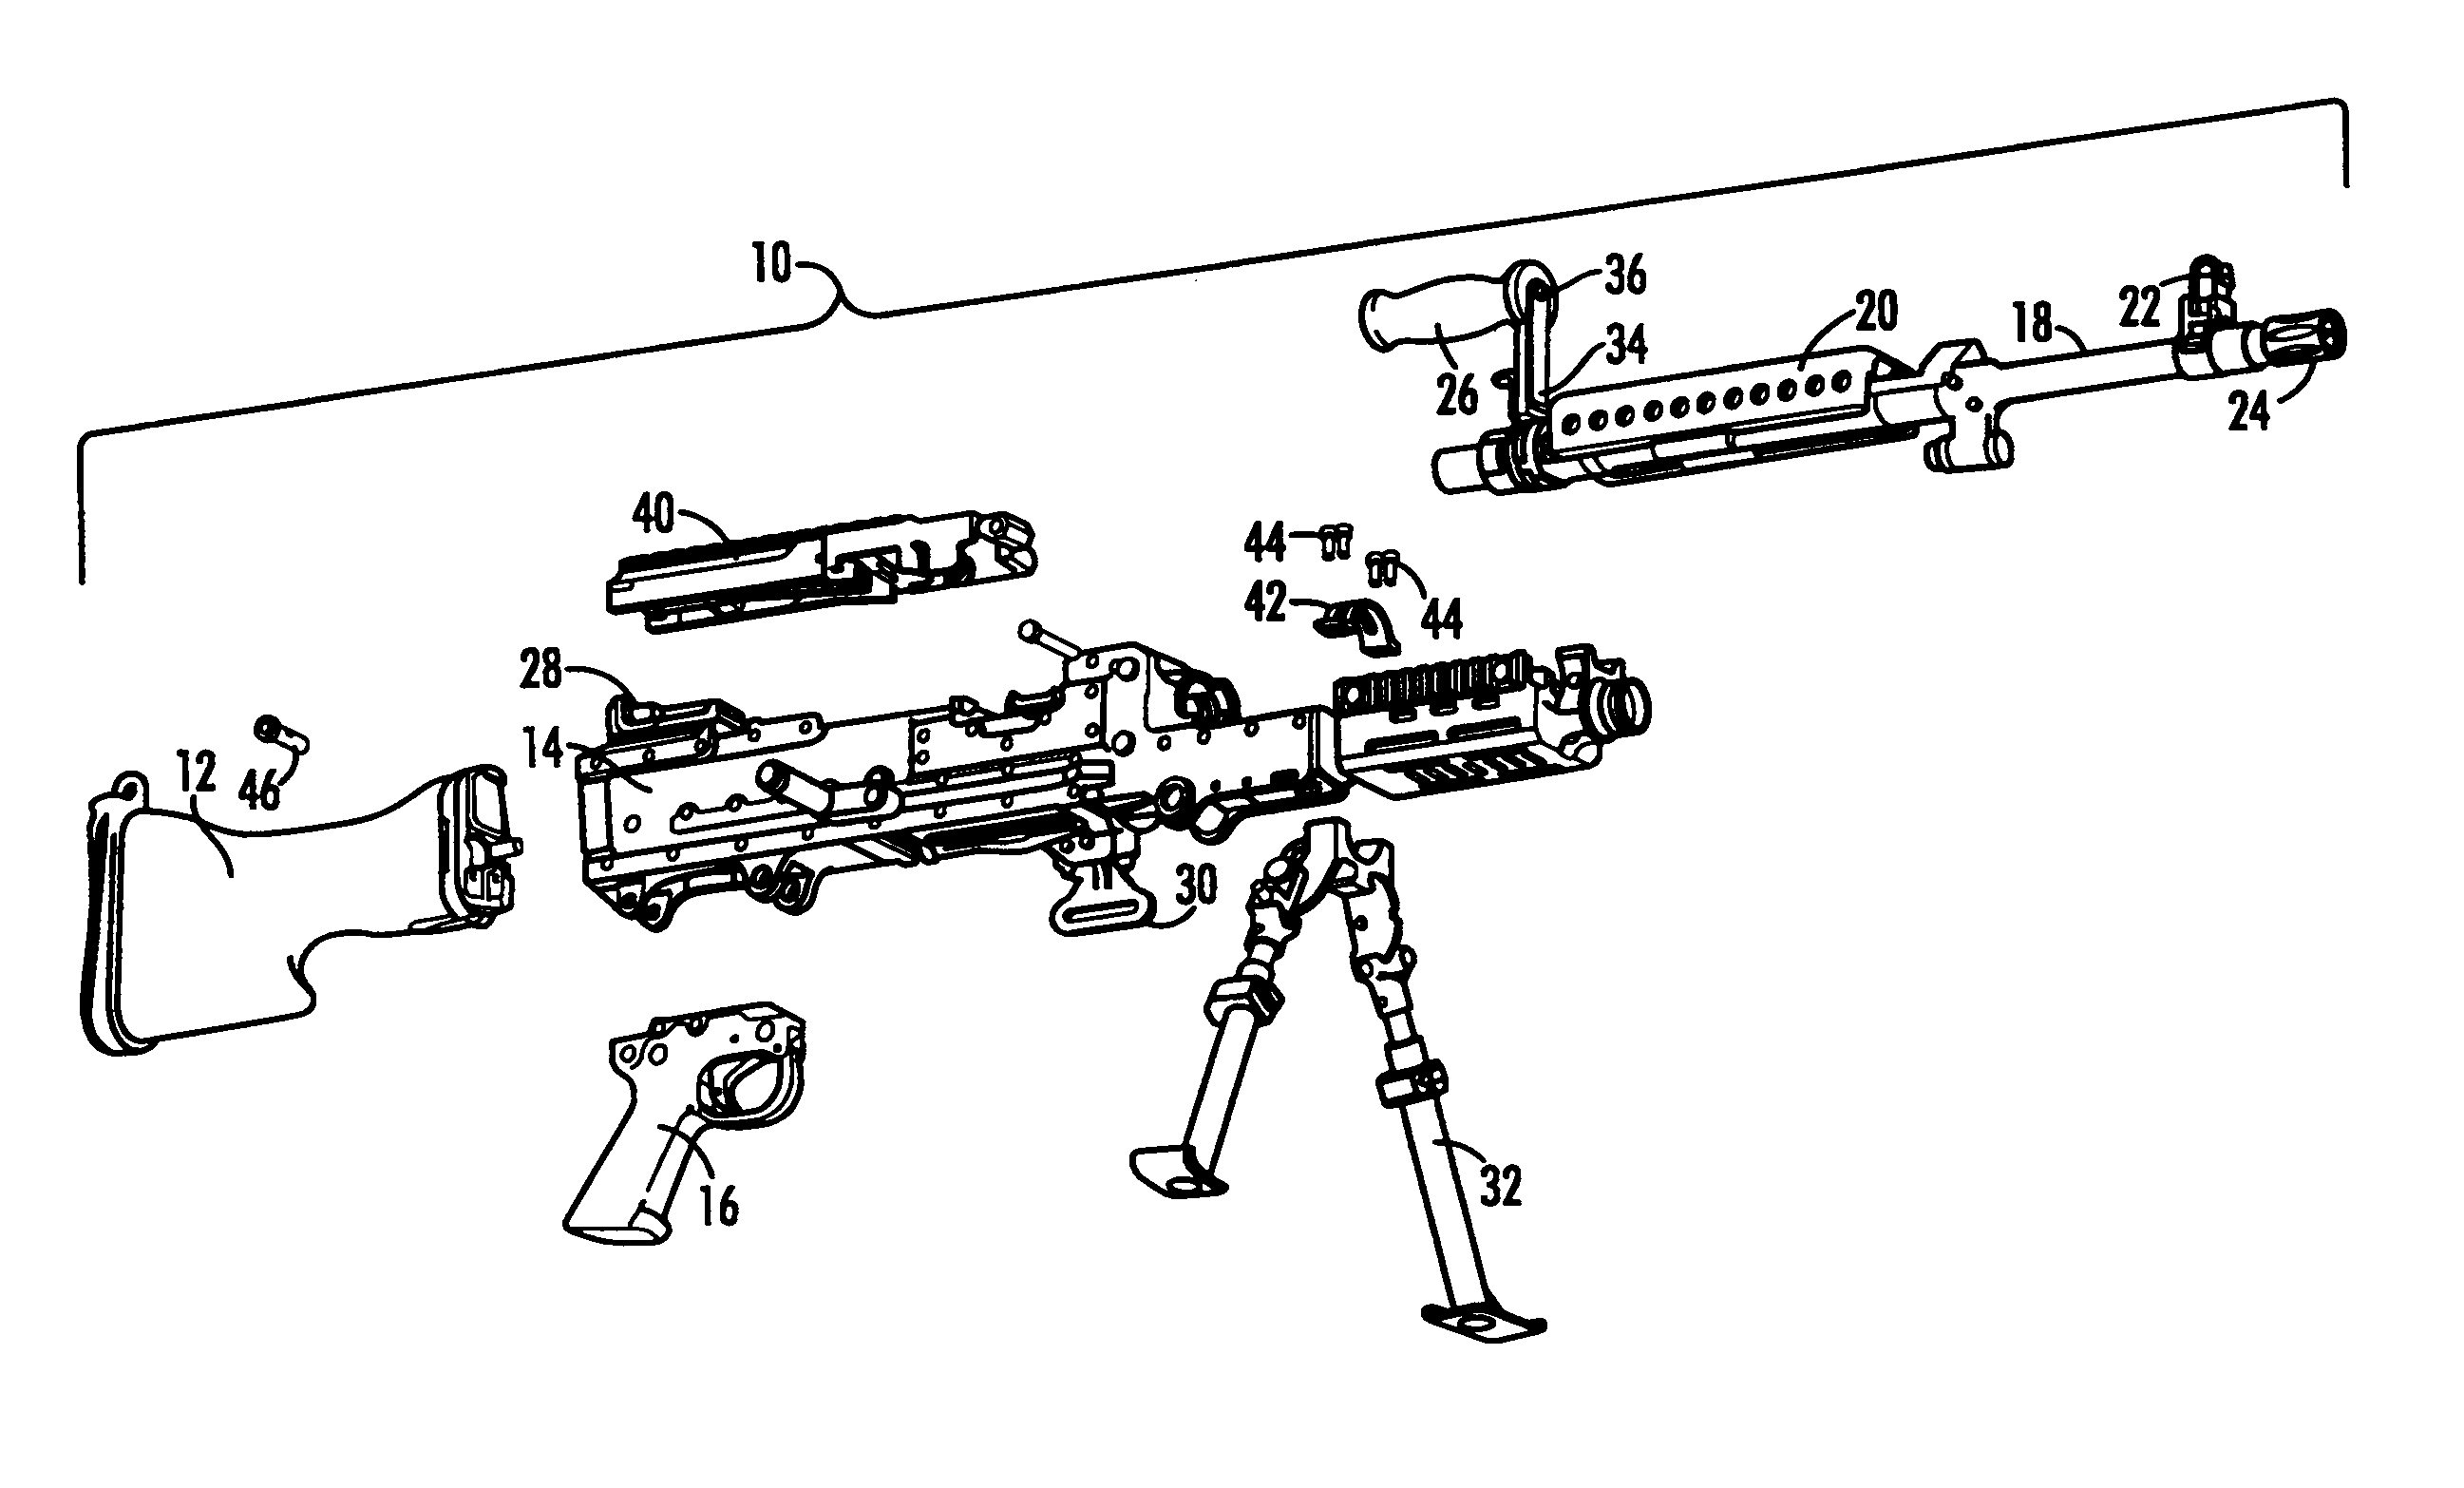 M240b Diagram Pictures To Pin